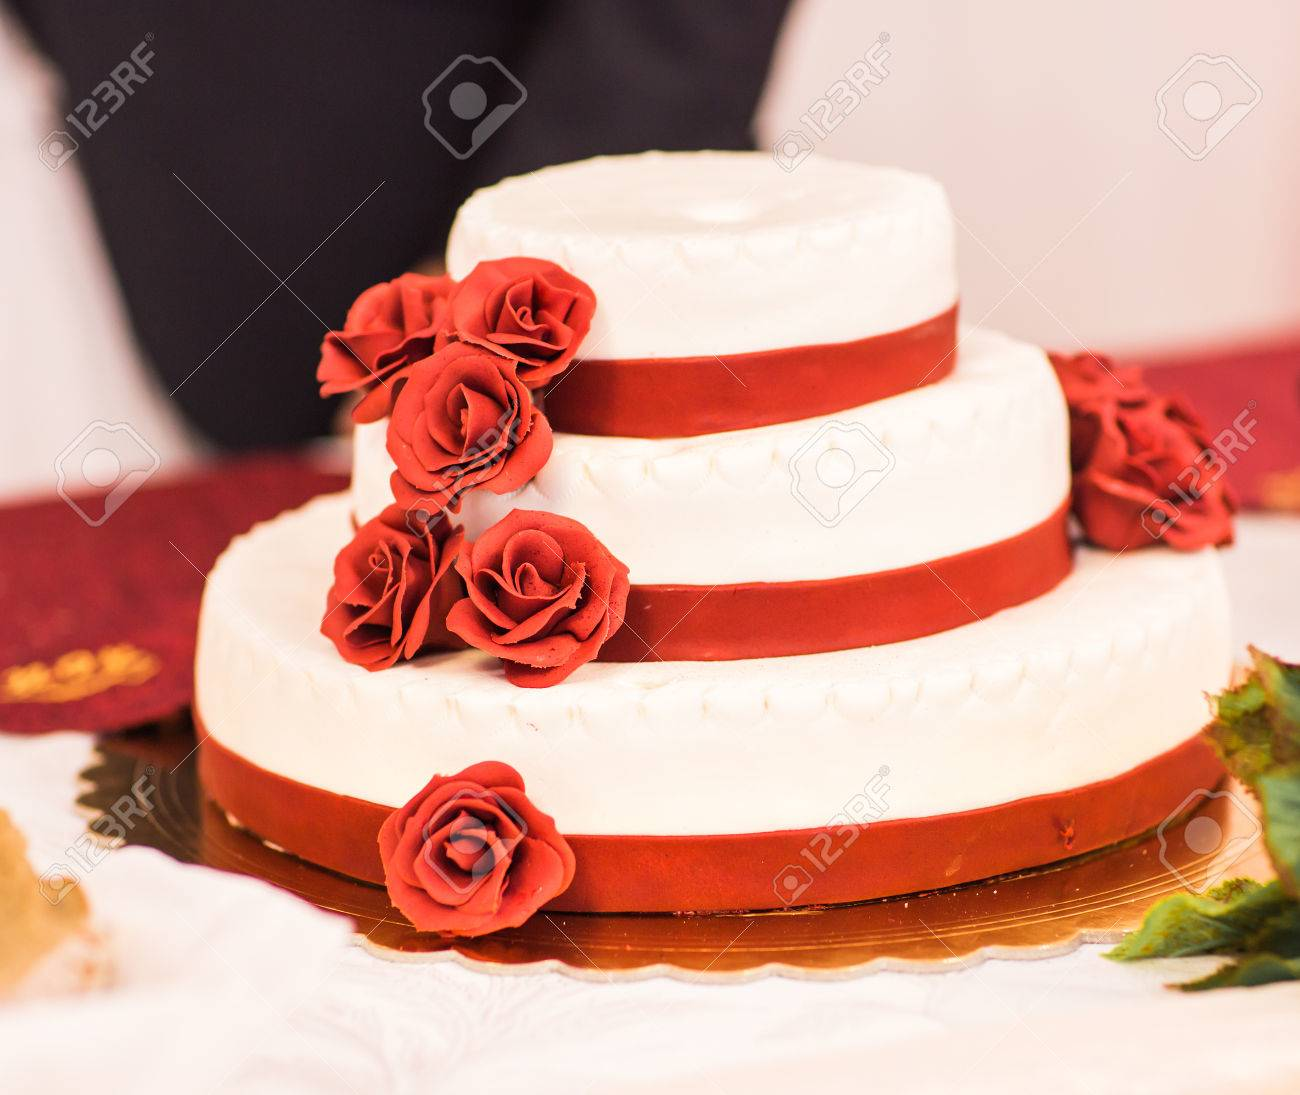 Wedding Cake With Red Roses. Wedding Dessert Stock Photo, Picture ...